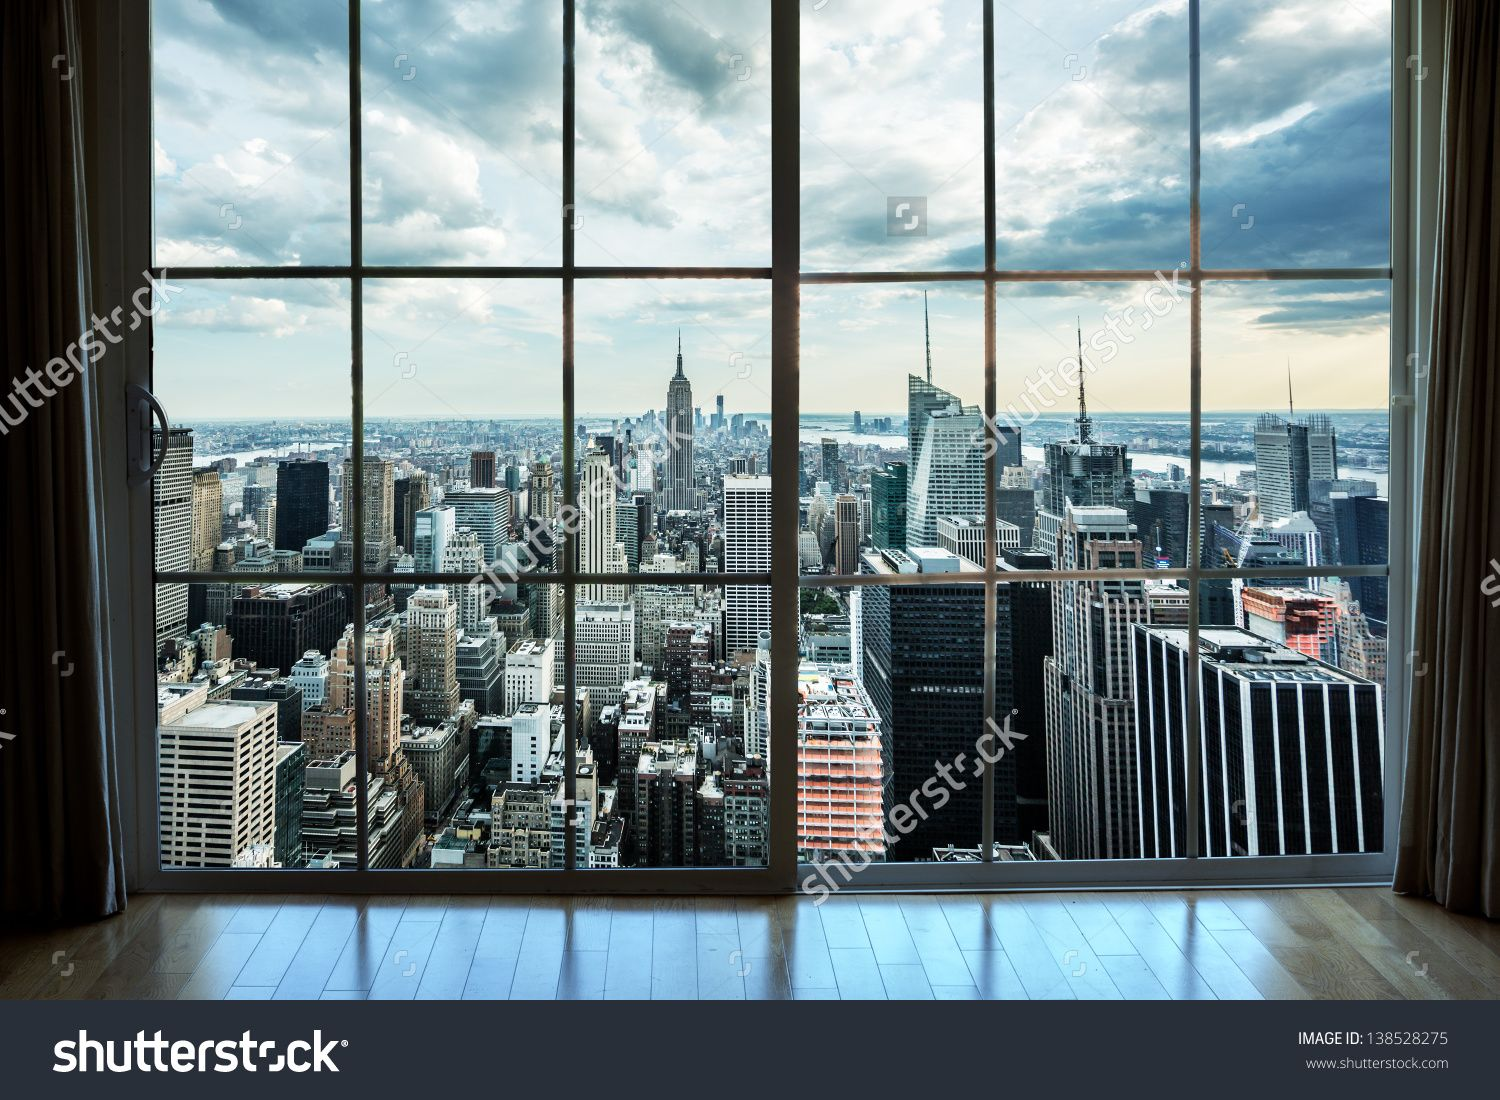 city building windows. View Of Manhattan New York City Skyline Buildings From High Rise Window  Beautiful Expensive Real Estate Overlooking Empire State Building And Skyscrapers